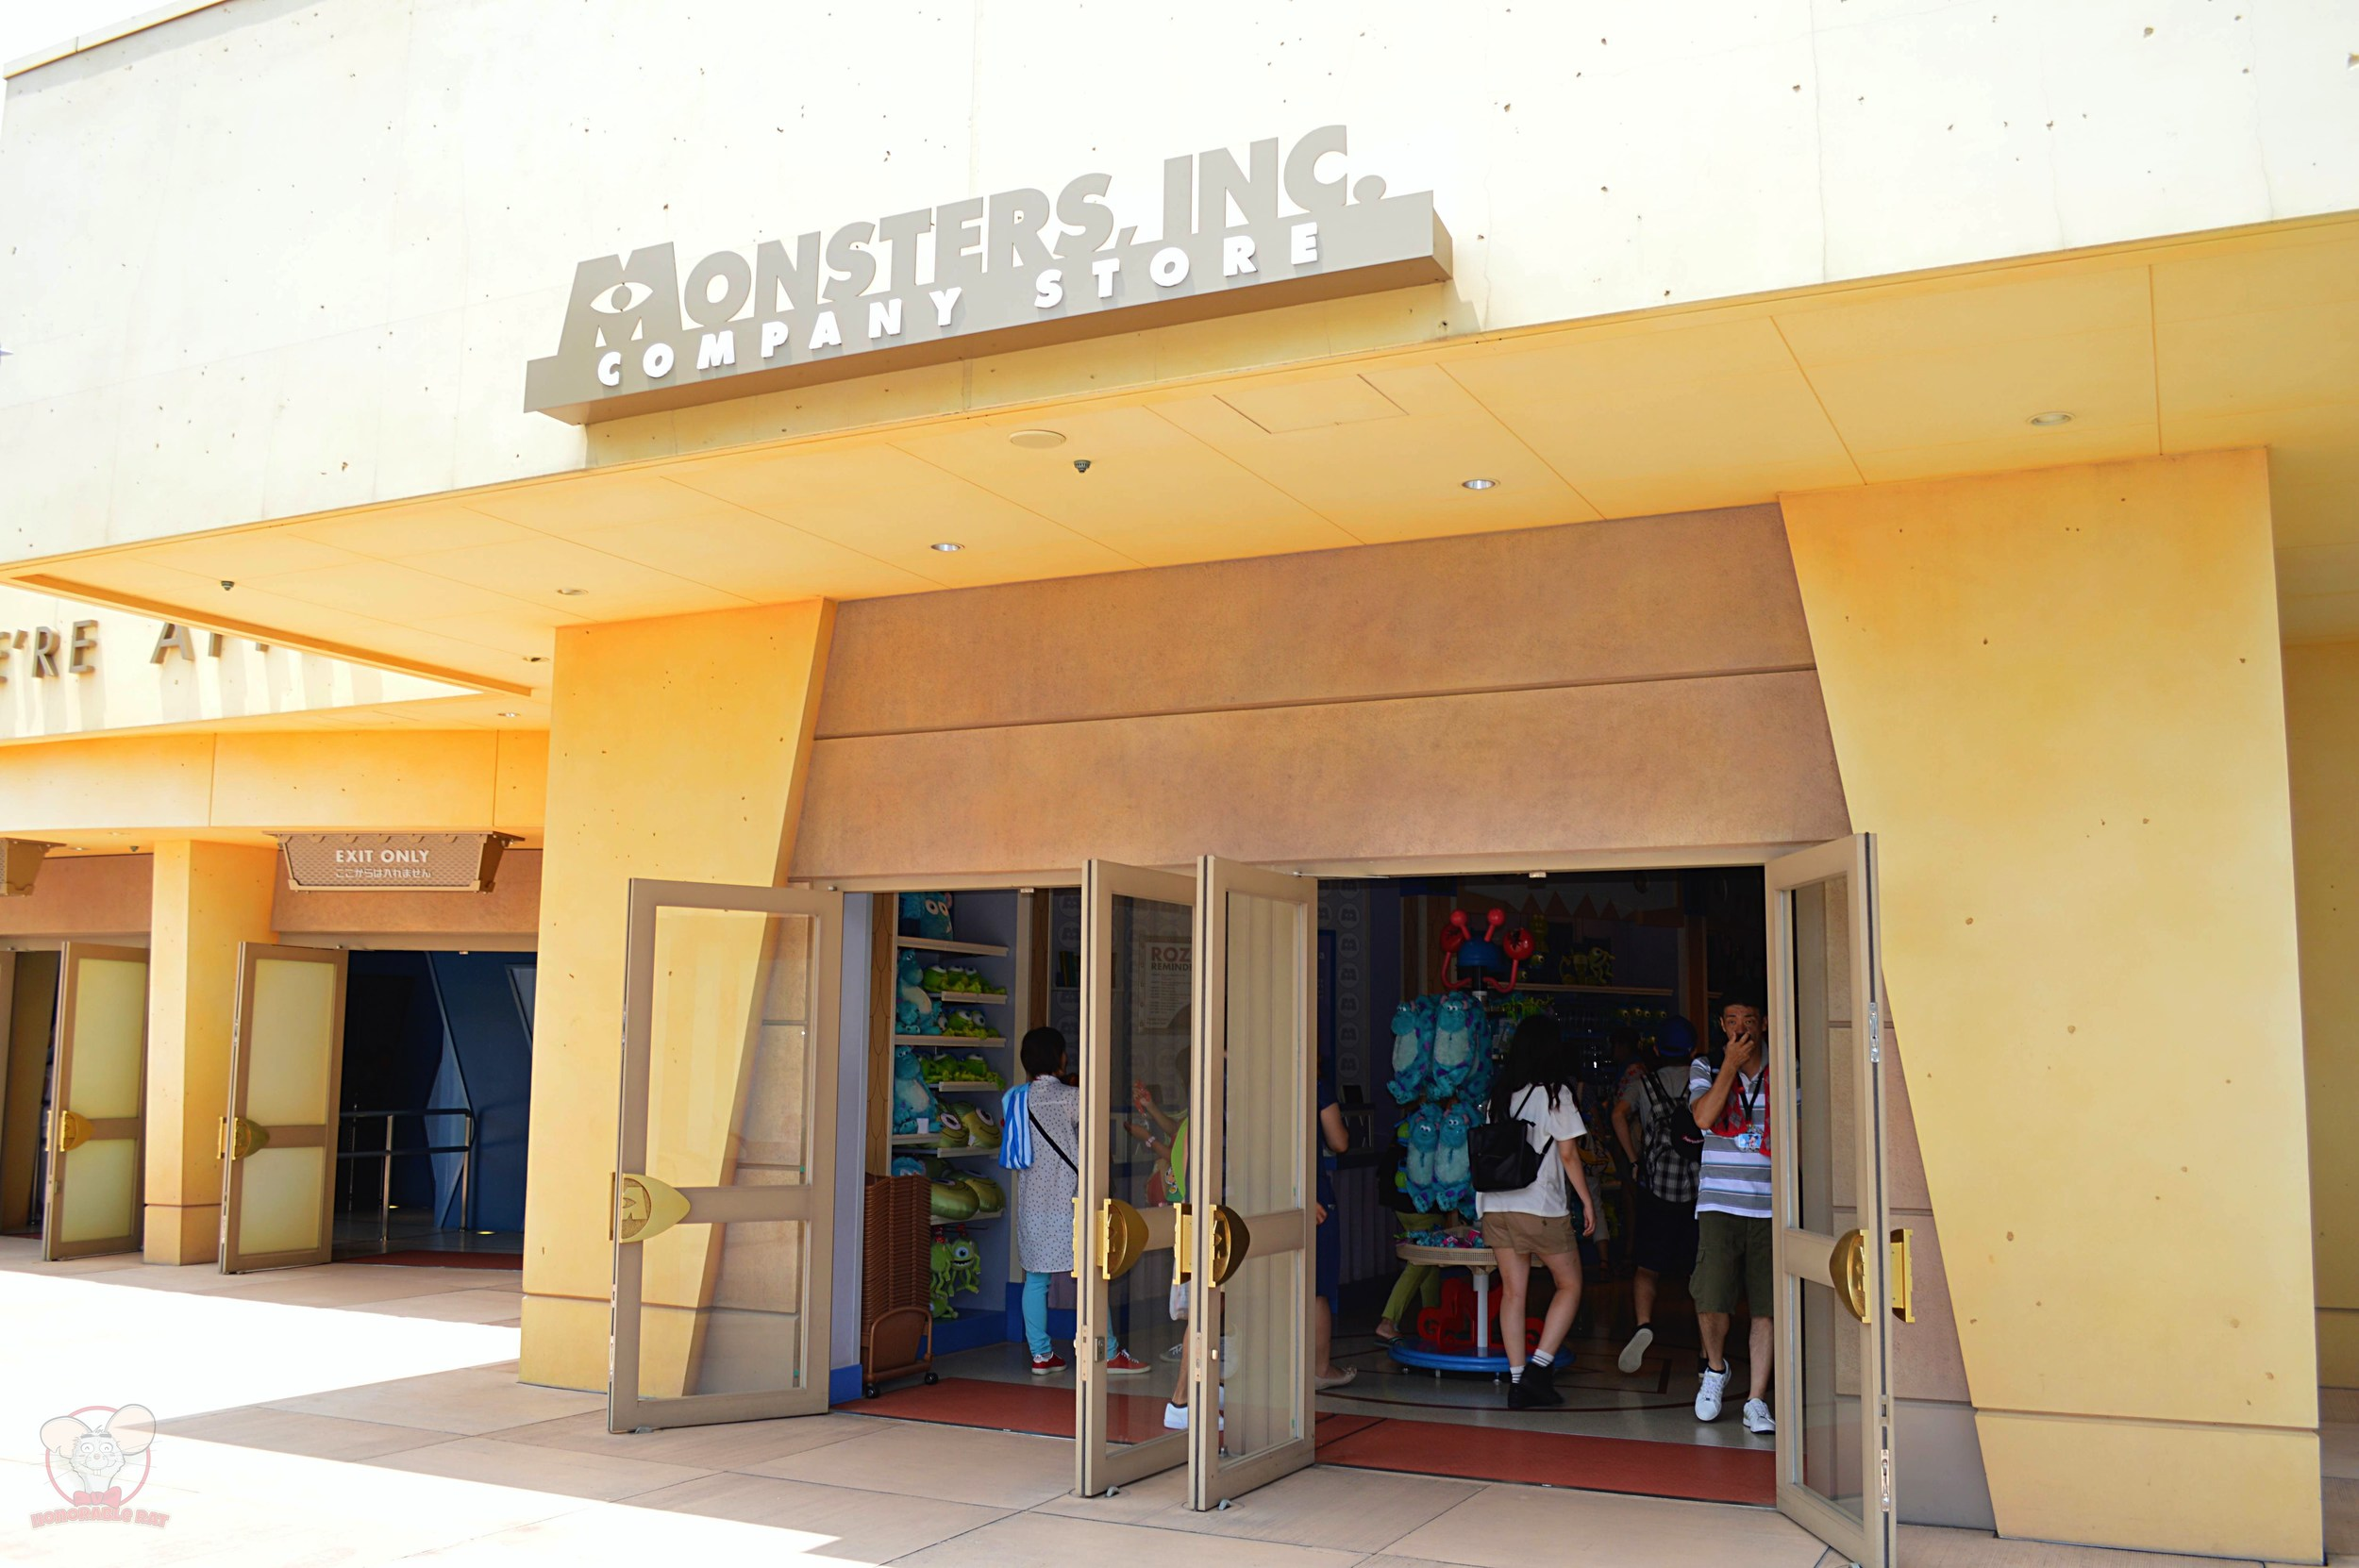 Monsters, Inc. Company Store